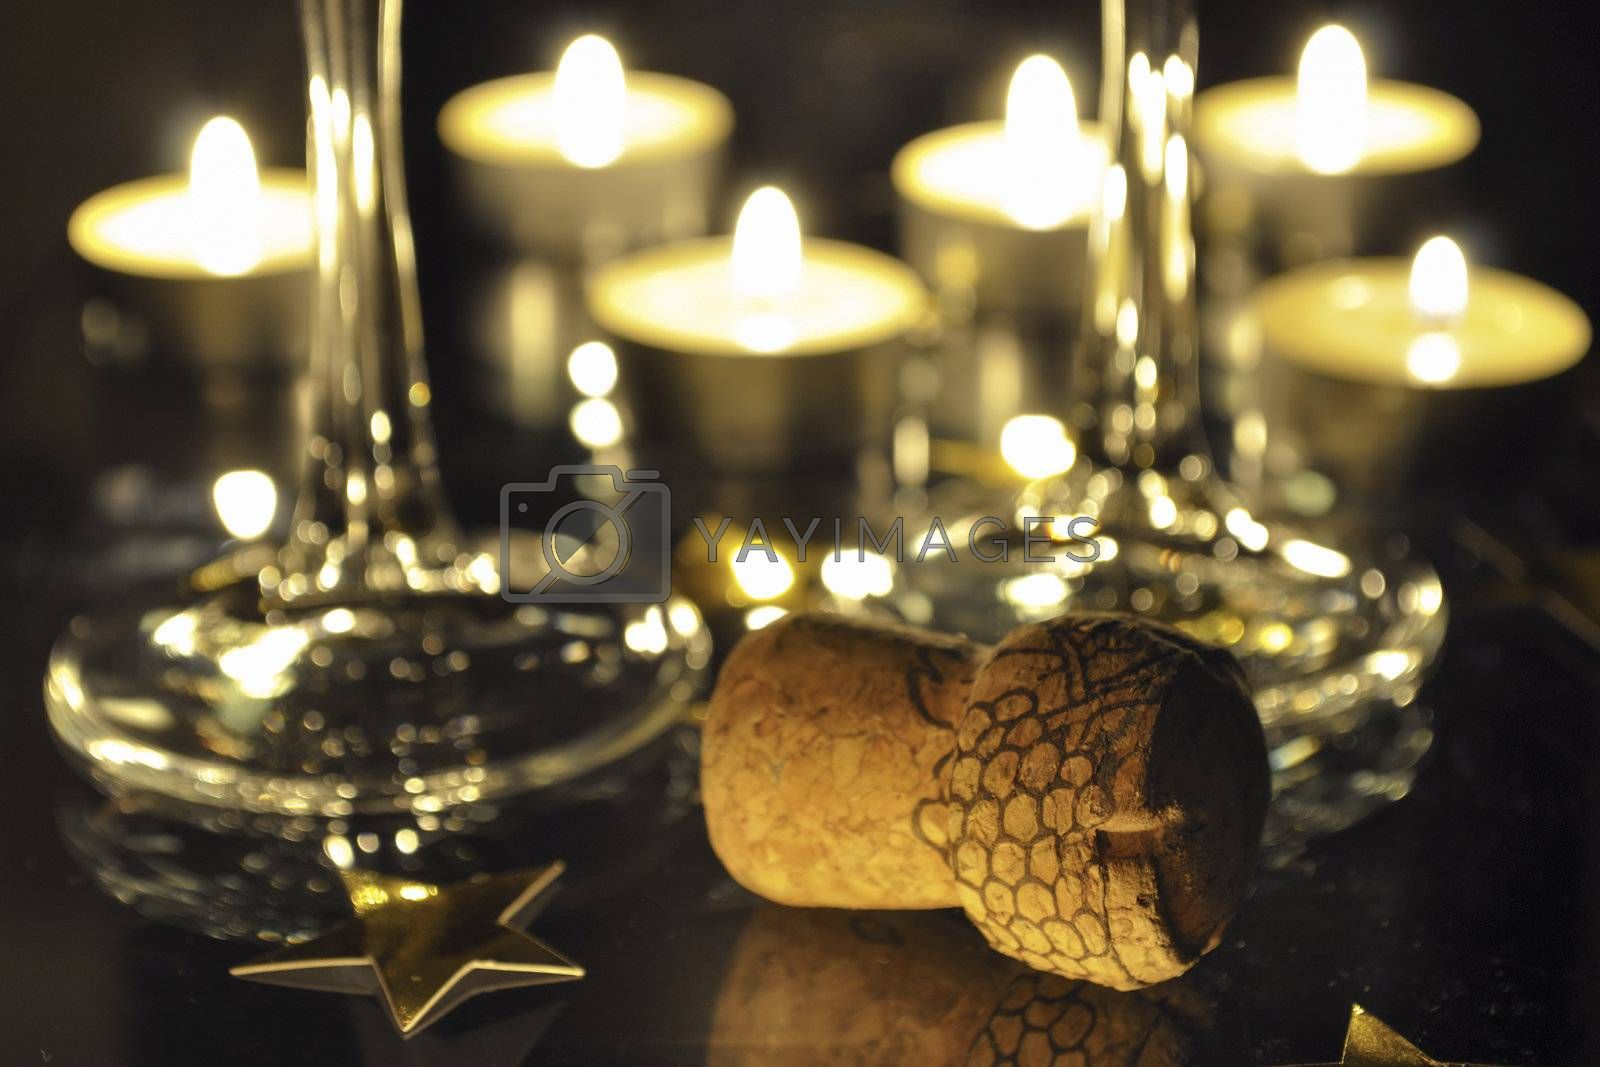 holiday still-life with Champagne cork , two glasses and many candles behind; focus on foreground cork